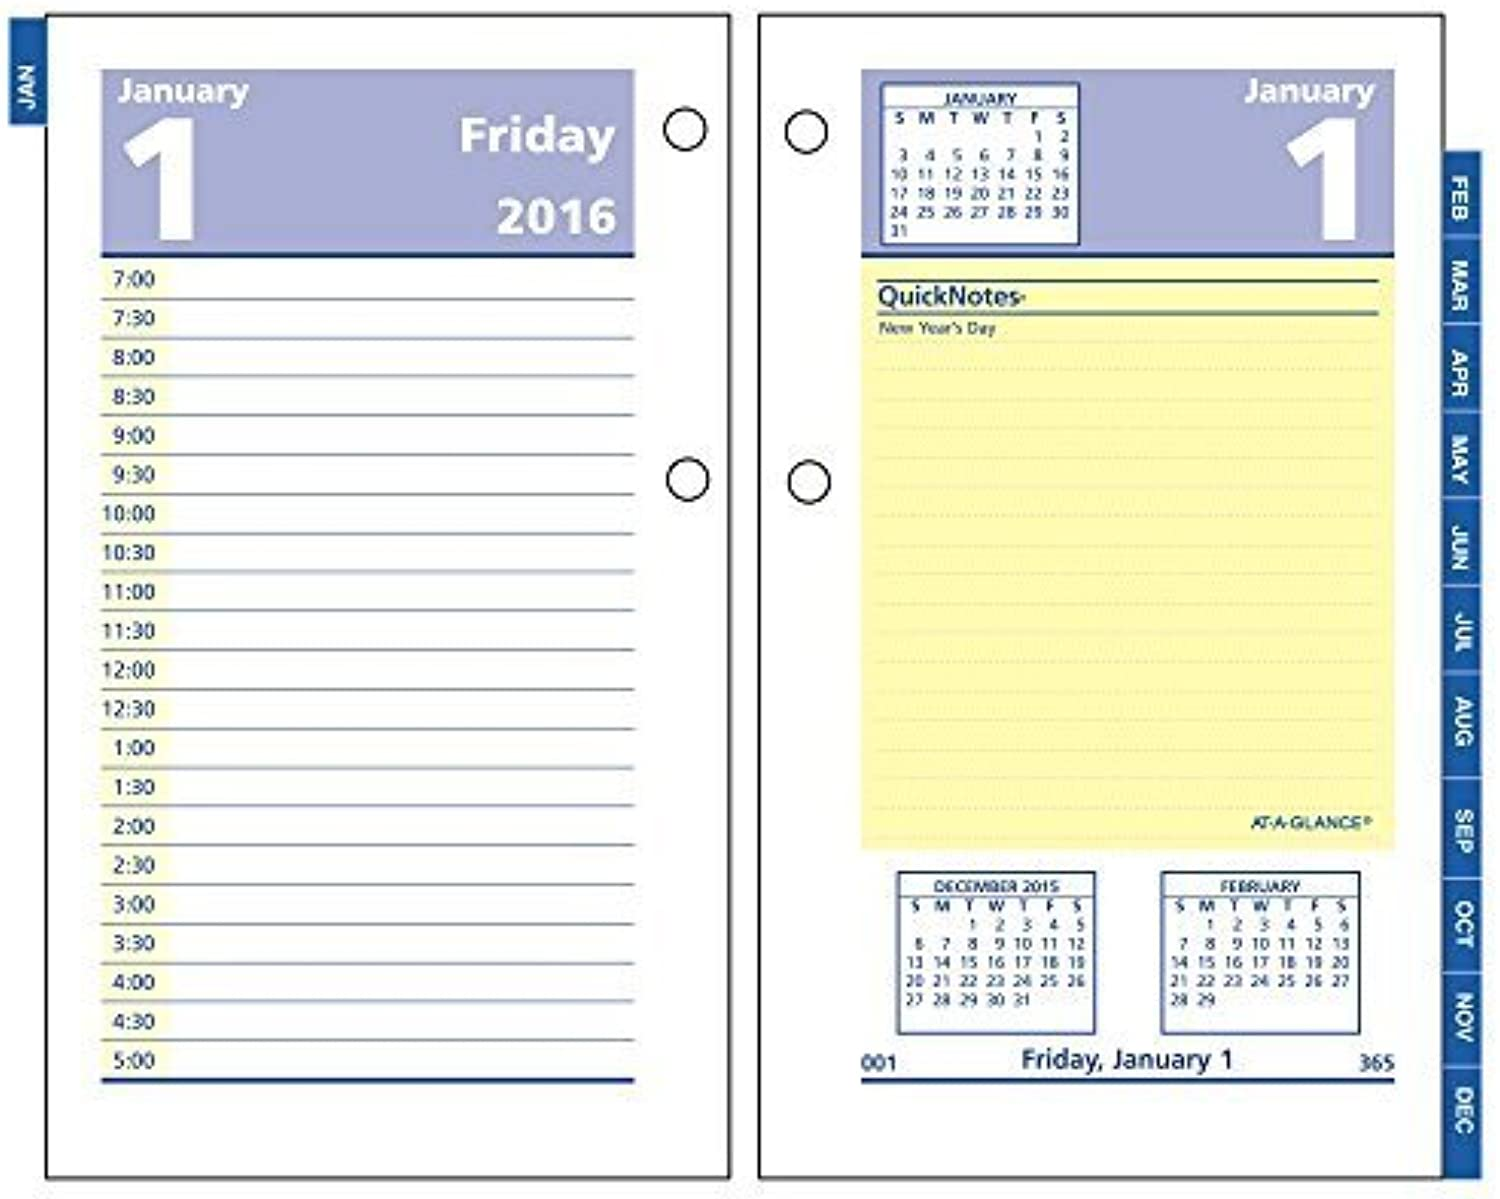 AT-A-GLANCE Daily Desk Calendar 2016 Refill, Quick Notes, 12 Months, 3.5 x 6 Inch Page Größe (E51750) by At-A-Glance B018REIFRU | Verschiedene Arten und Stile